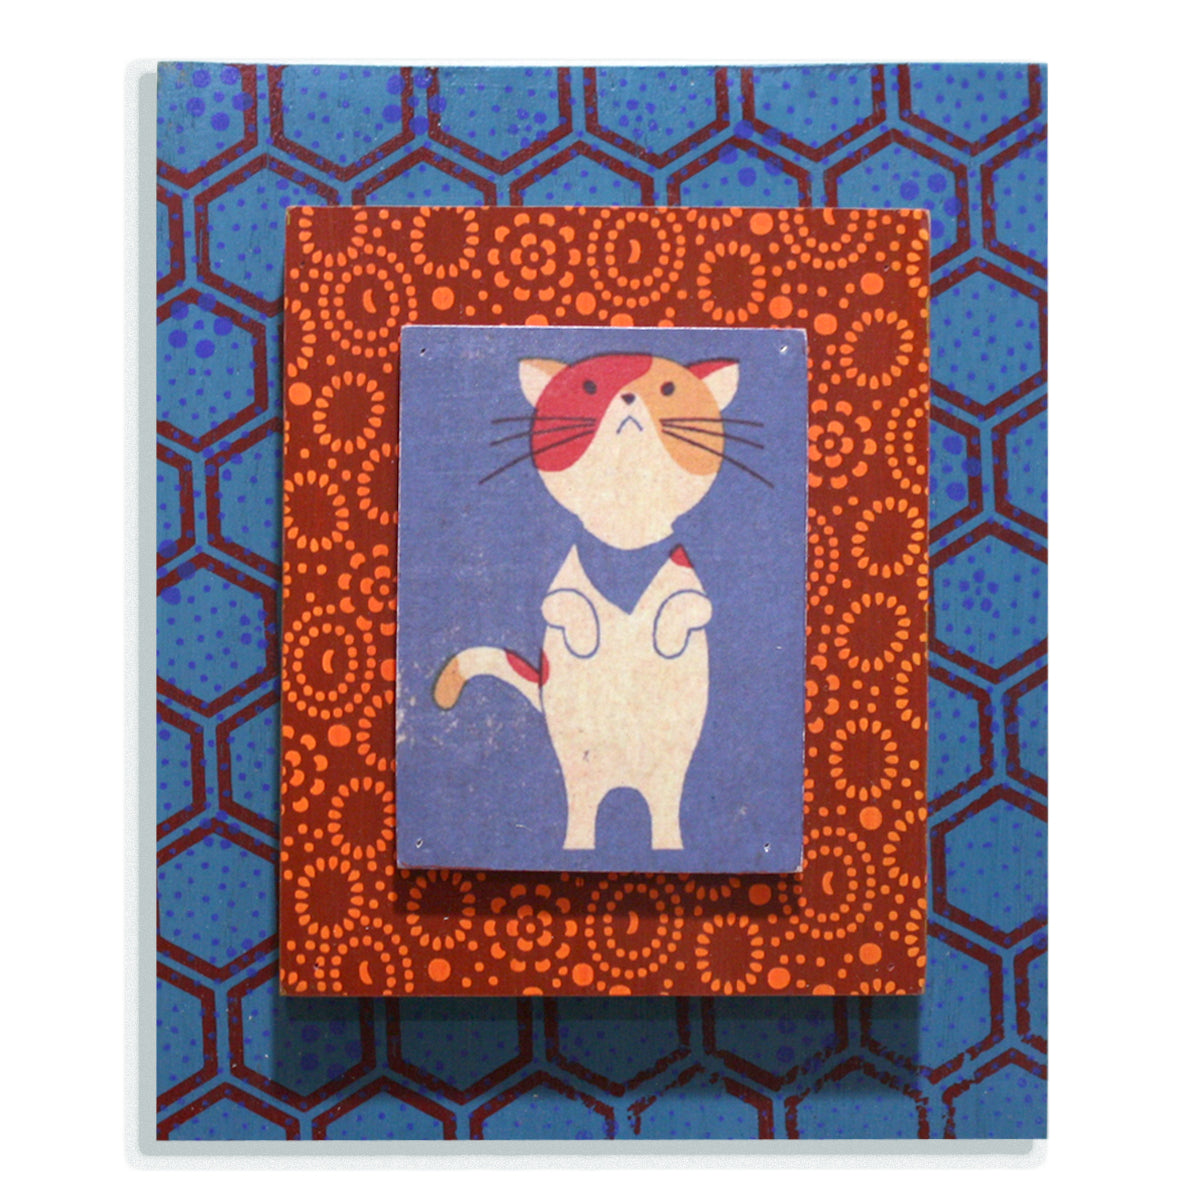 Begging cat on blue and red